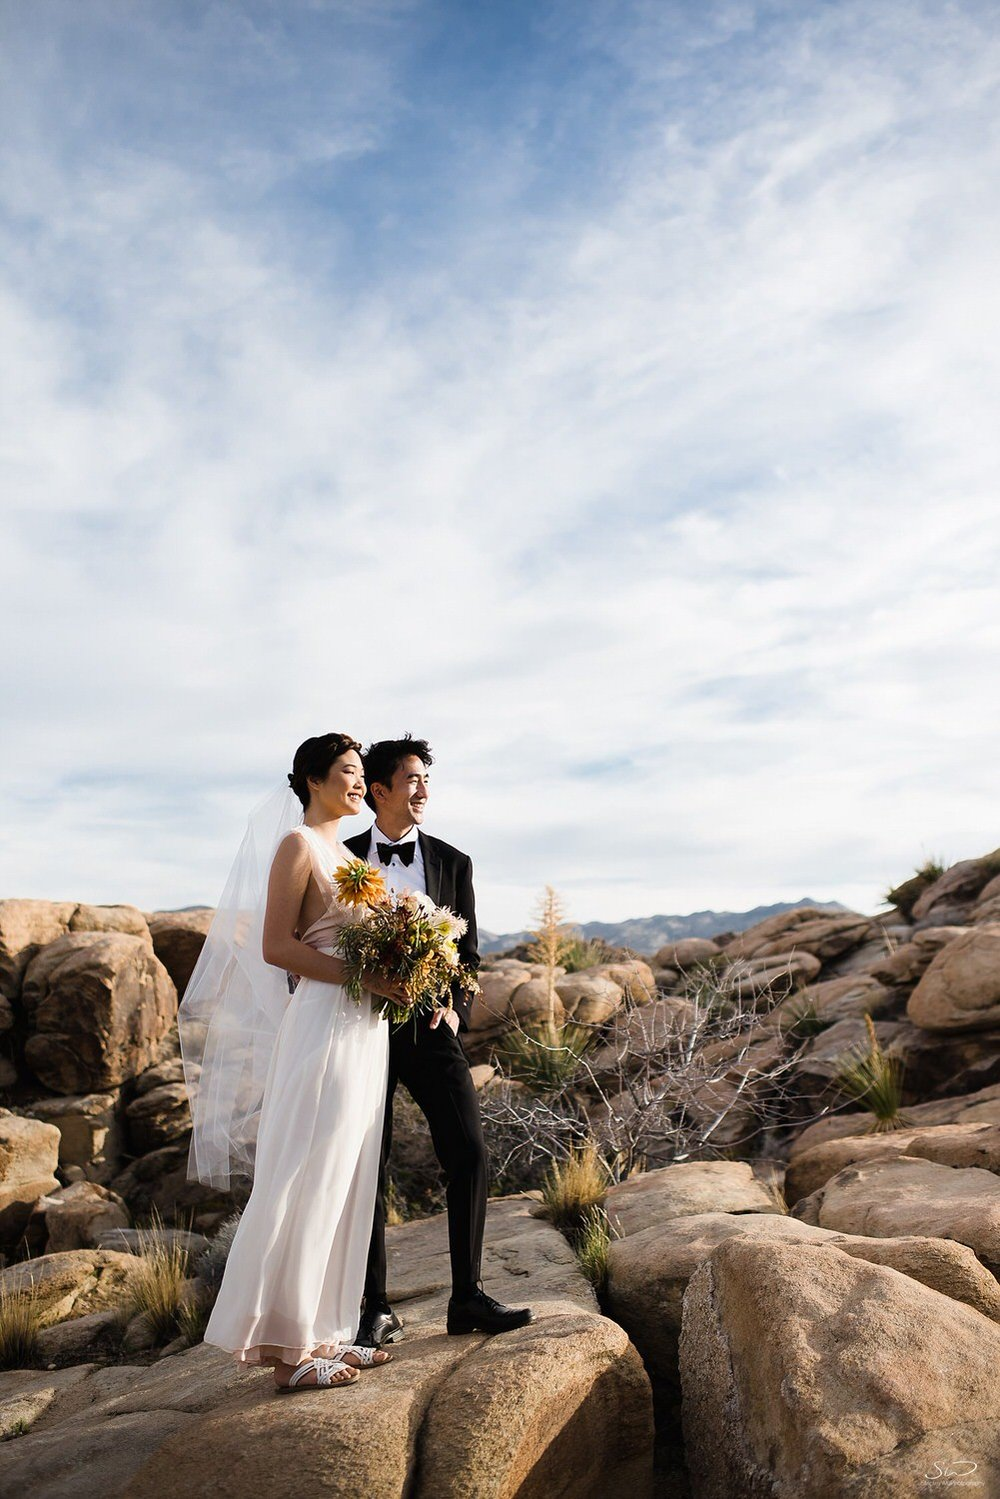 Couple portrait looking into the sun | Joshua Tree Desert Wedding, Engagement, Elopement, Adventure Inspiration